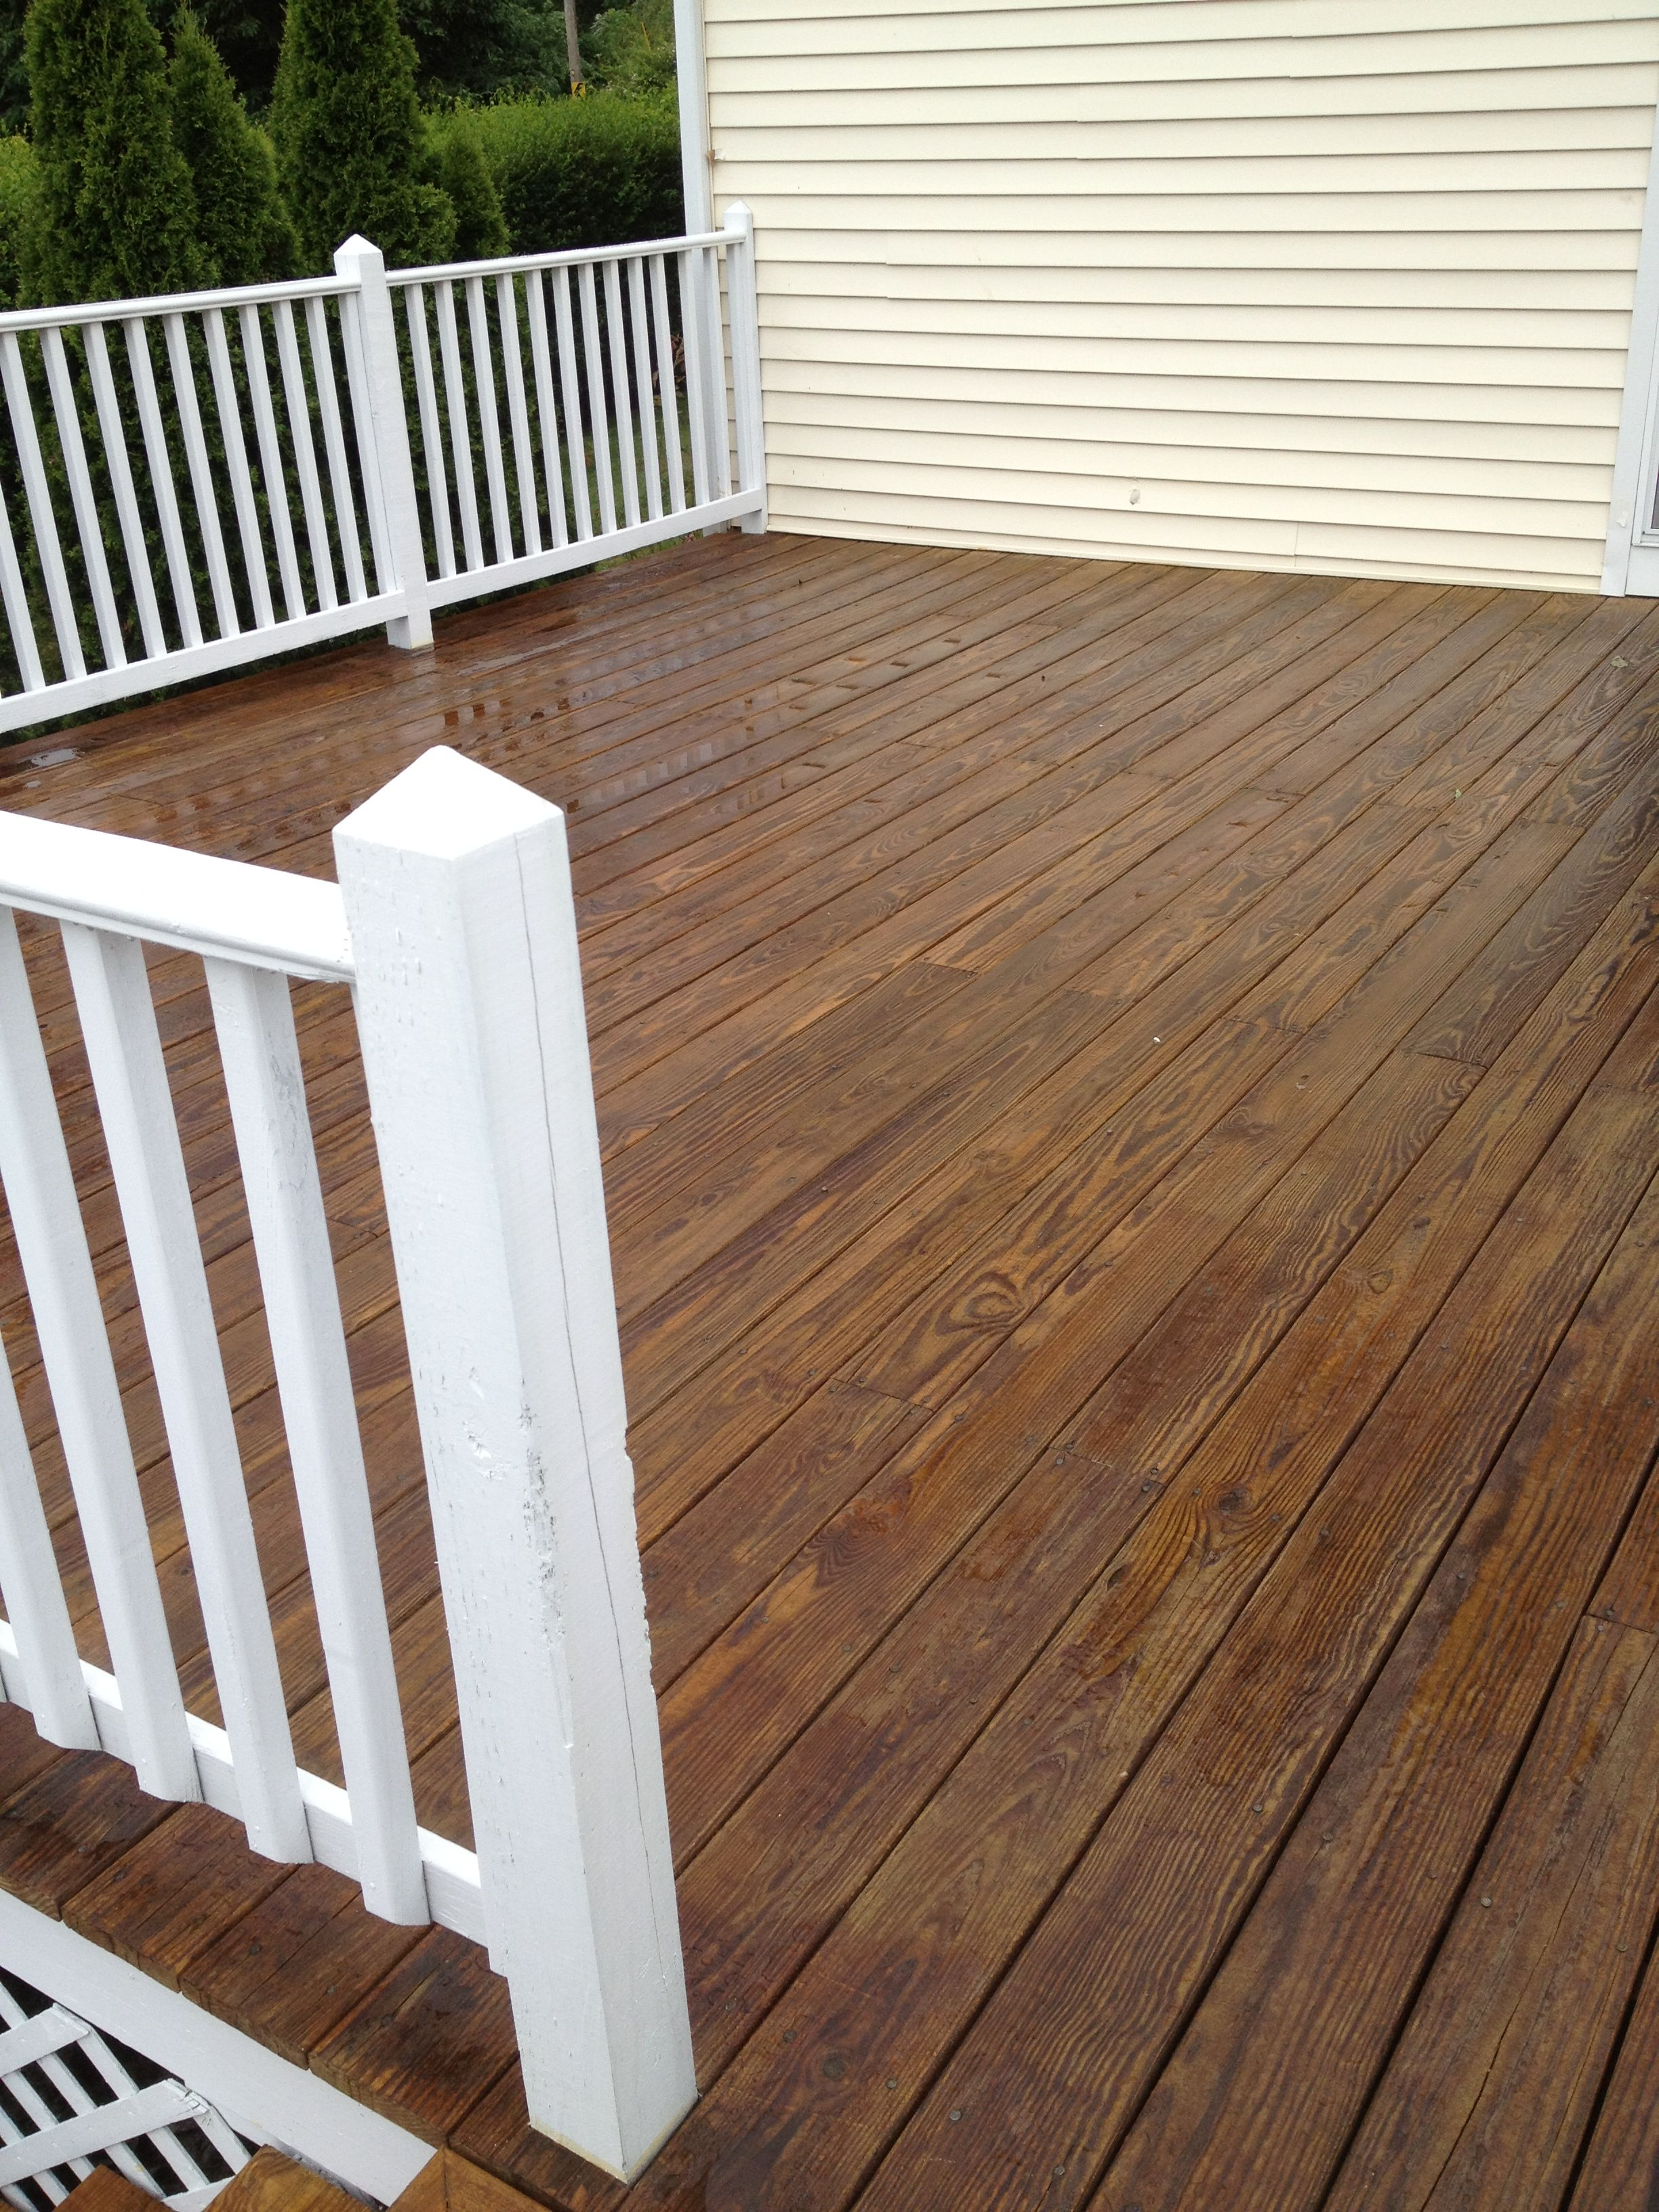 decks decks and more decks pinterest stains wood decks and